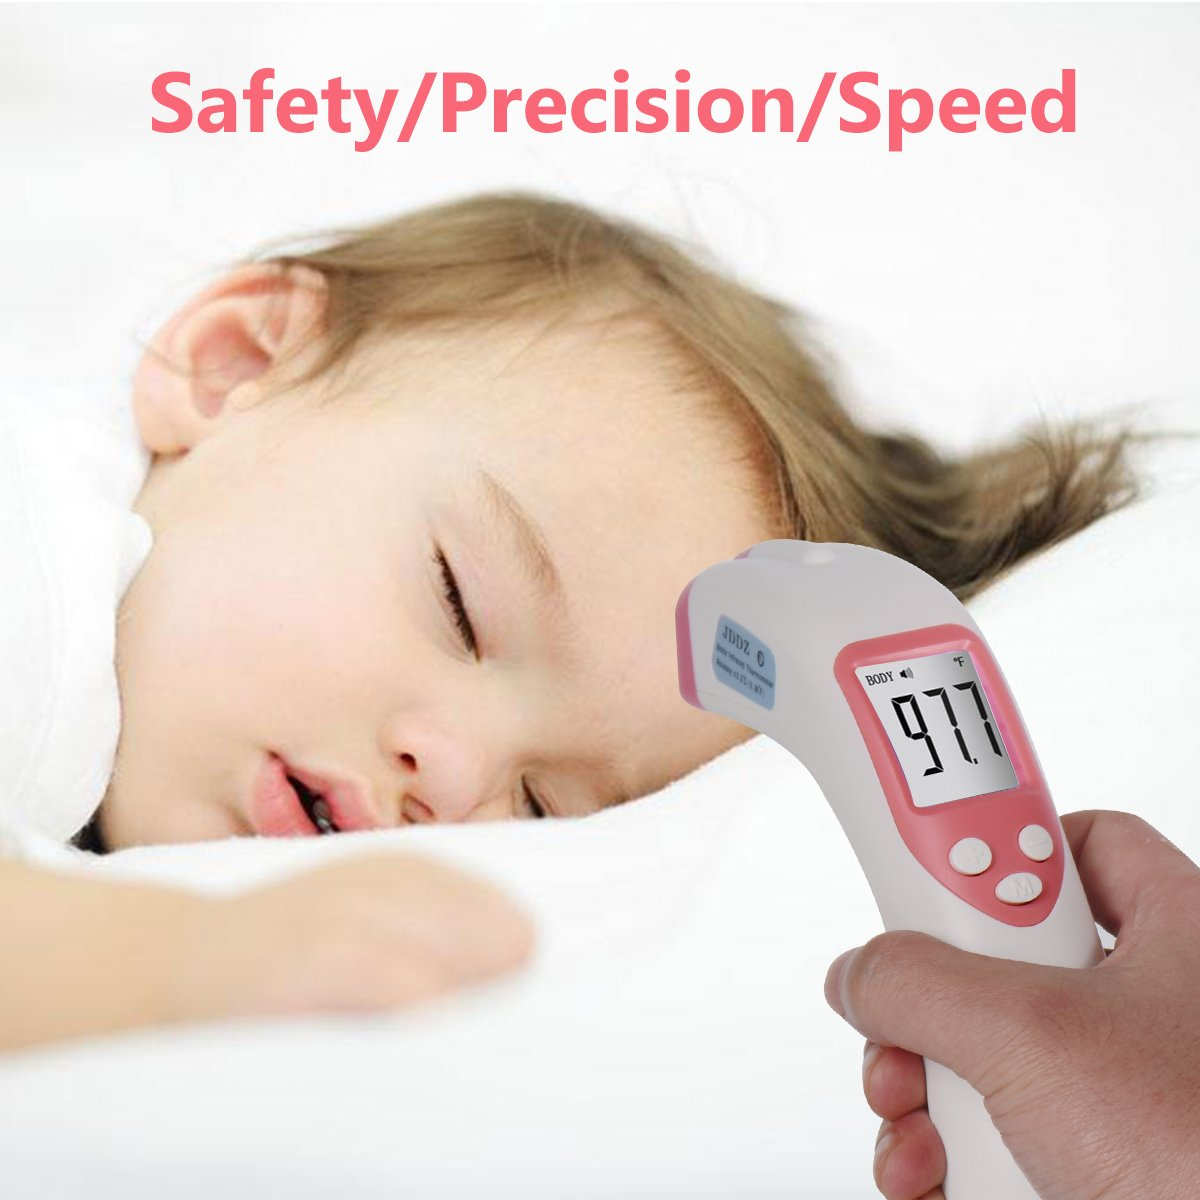 Forehead Thermometer, JDDZ Non-Contact Infants Infrared Thermometer, Professional Clinical Instant Digital Fever Temperature Scanner for Baby,Kids and Home with Bilingual Celsius Fahrenheit(Pink) by JDDZ (Image #7)